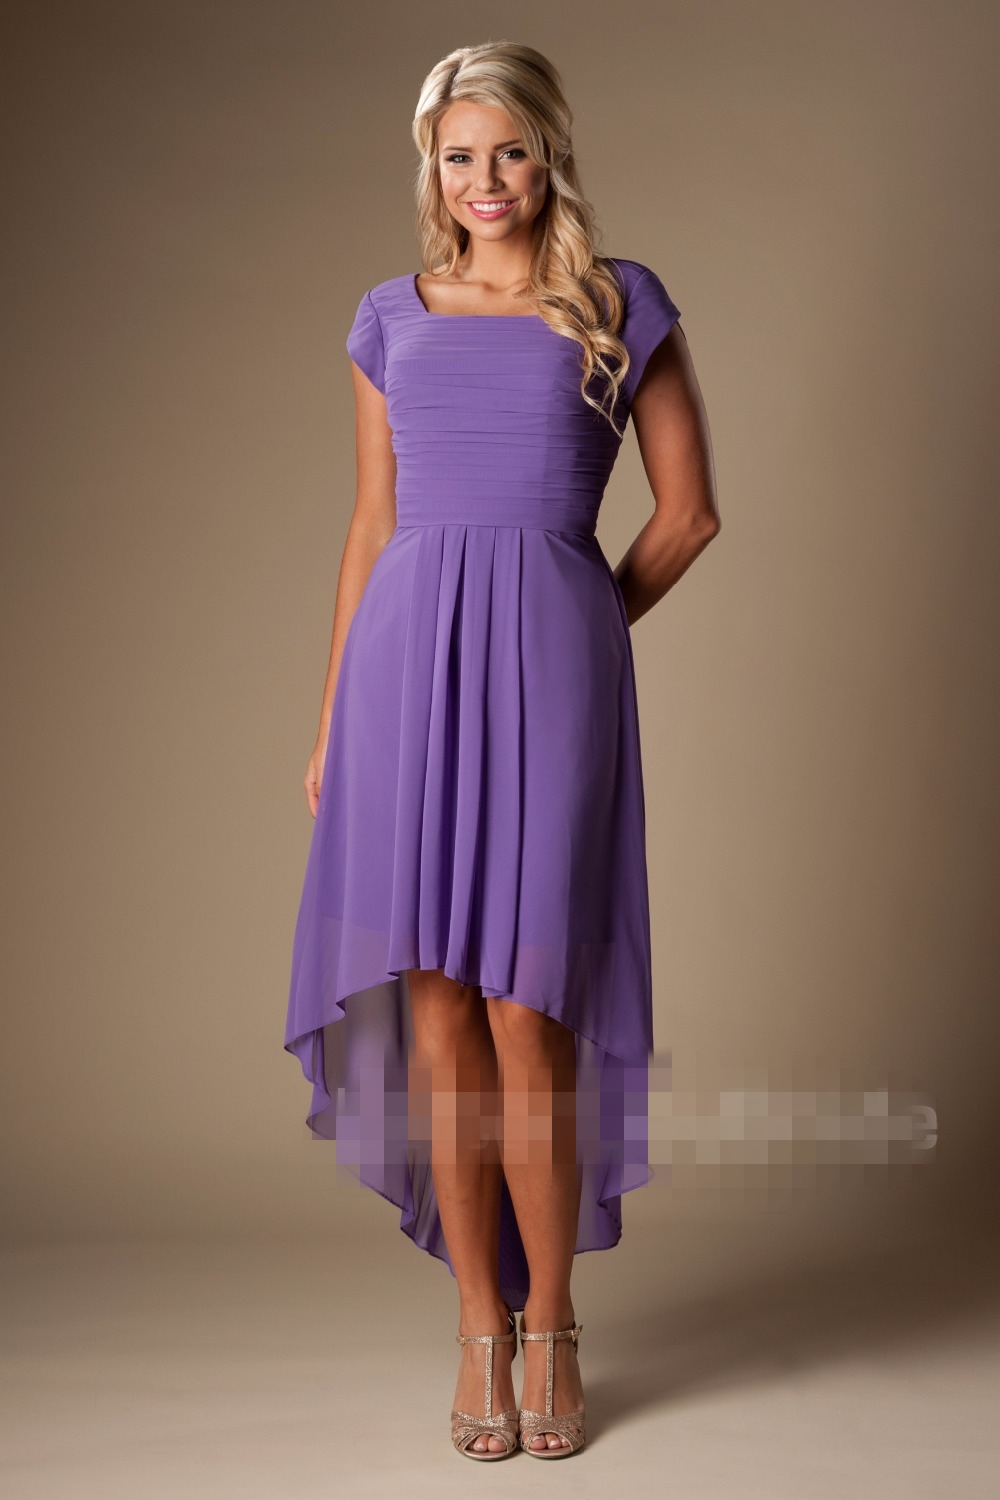 3bf6bc50a773 Purple Modest Bridesmaid Dresses - raveitsafe